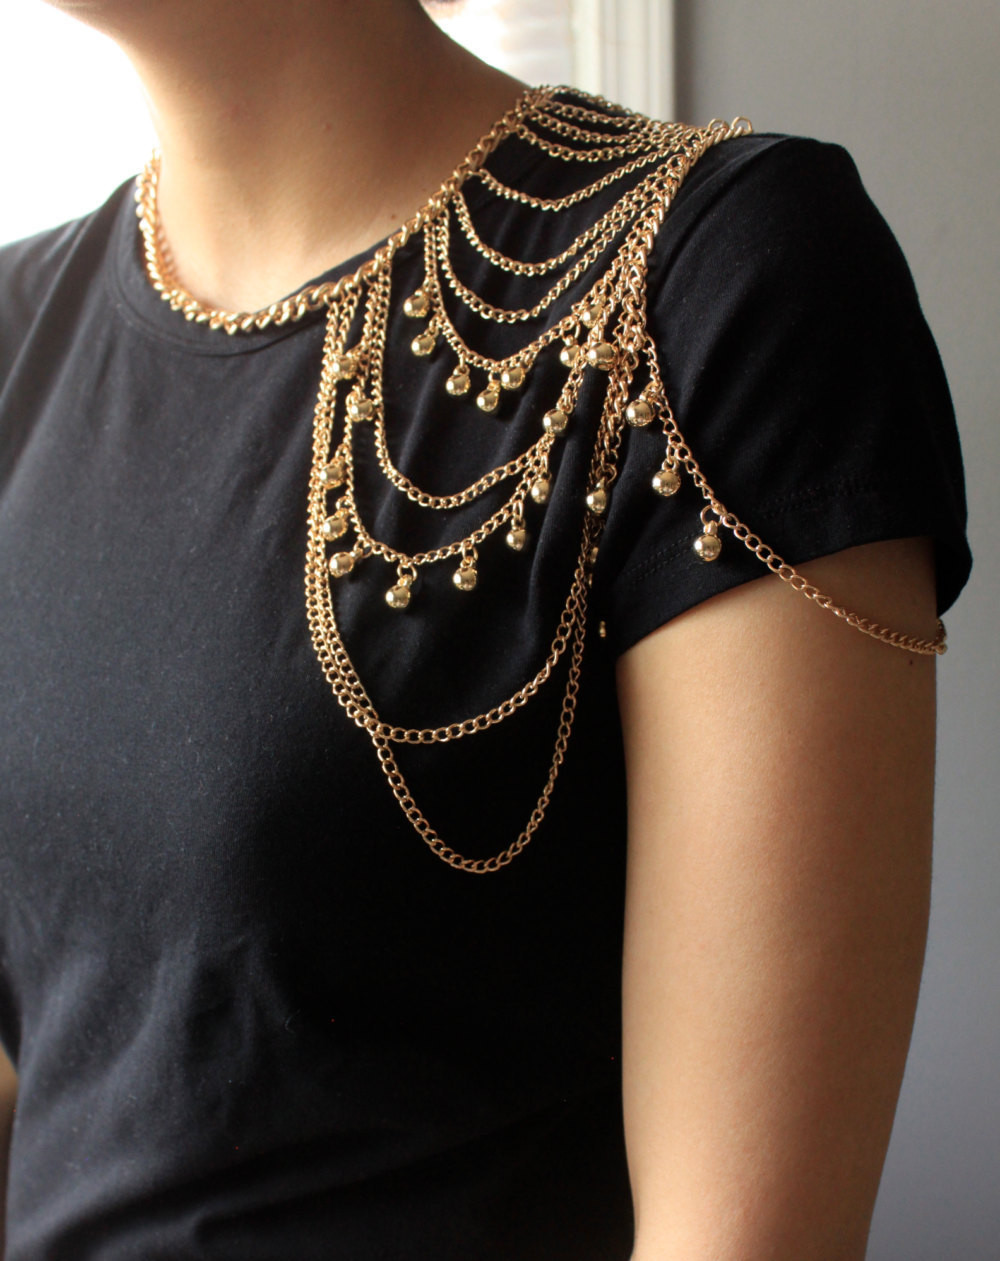 Body Jewelry Shoulder  Shoulder Jewelry Gold Shoulder Chain Body by SusVintage on